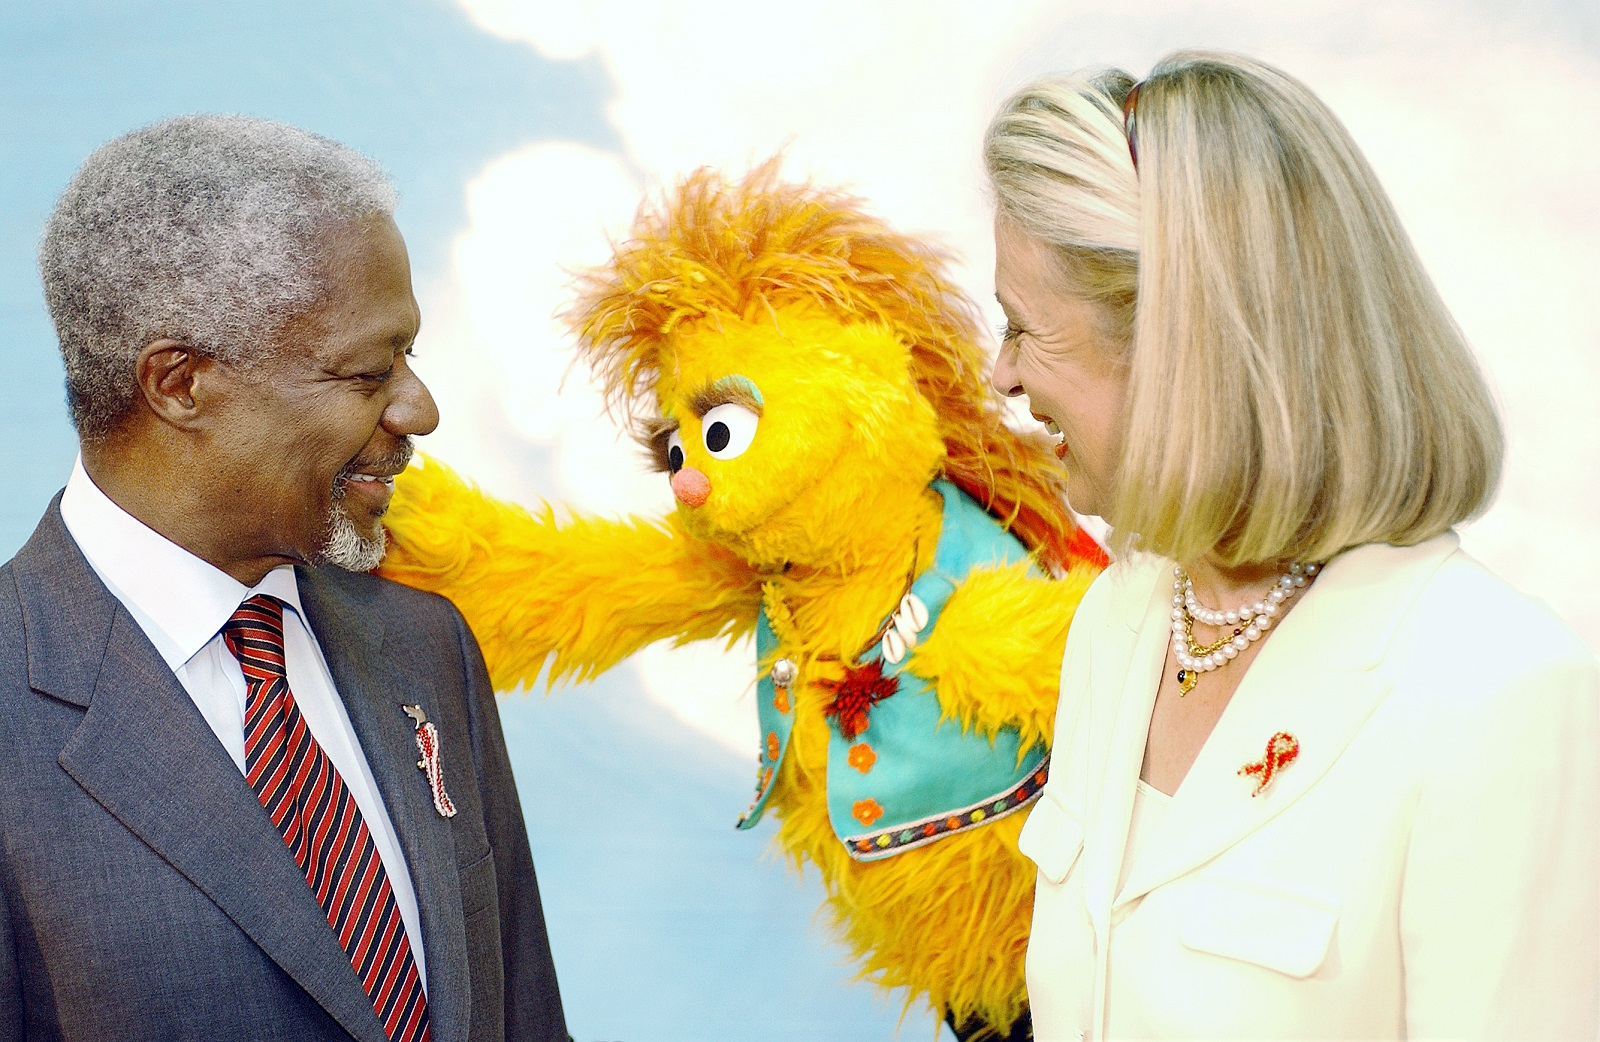 Former UN Secretary-General Kofi Annan (left) and his wife, Mrs. Nane Annan (right) pose with Kami, a HIV positive muppet on the South African version of Sesame Street whose name means acceptance in the Tswana language. Credit: UN Photo/Evan Schneider